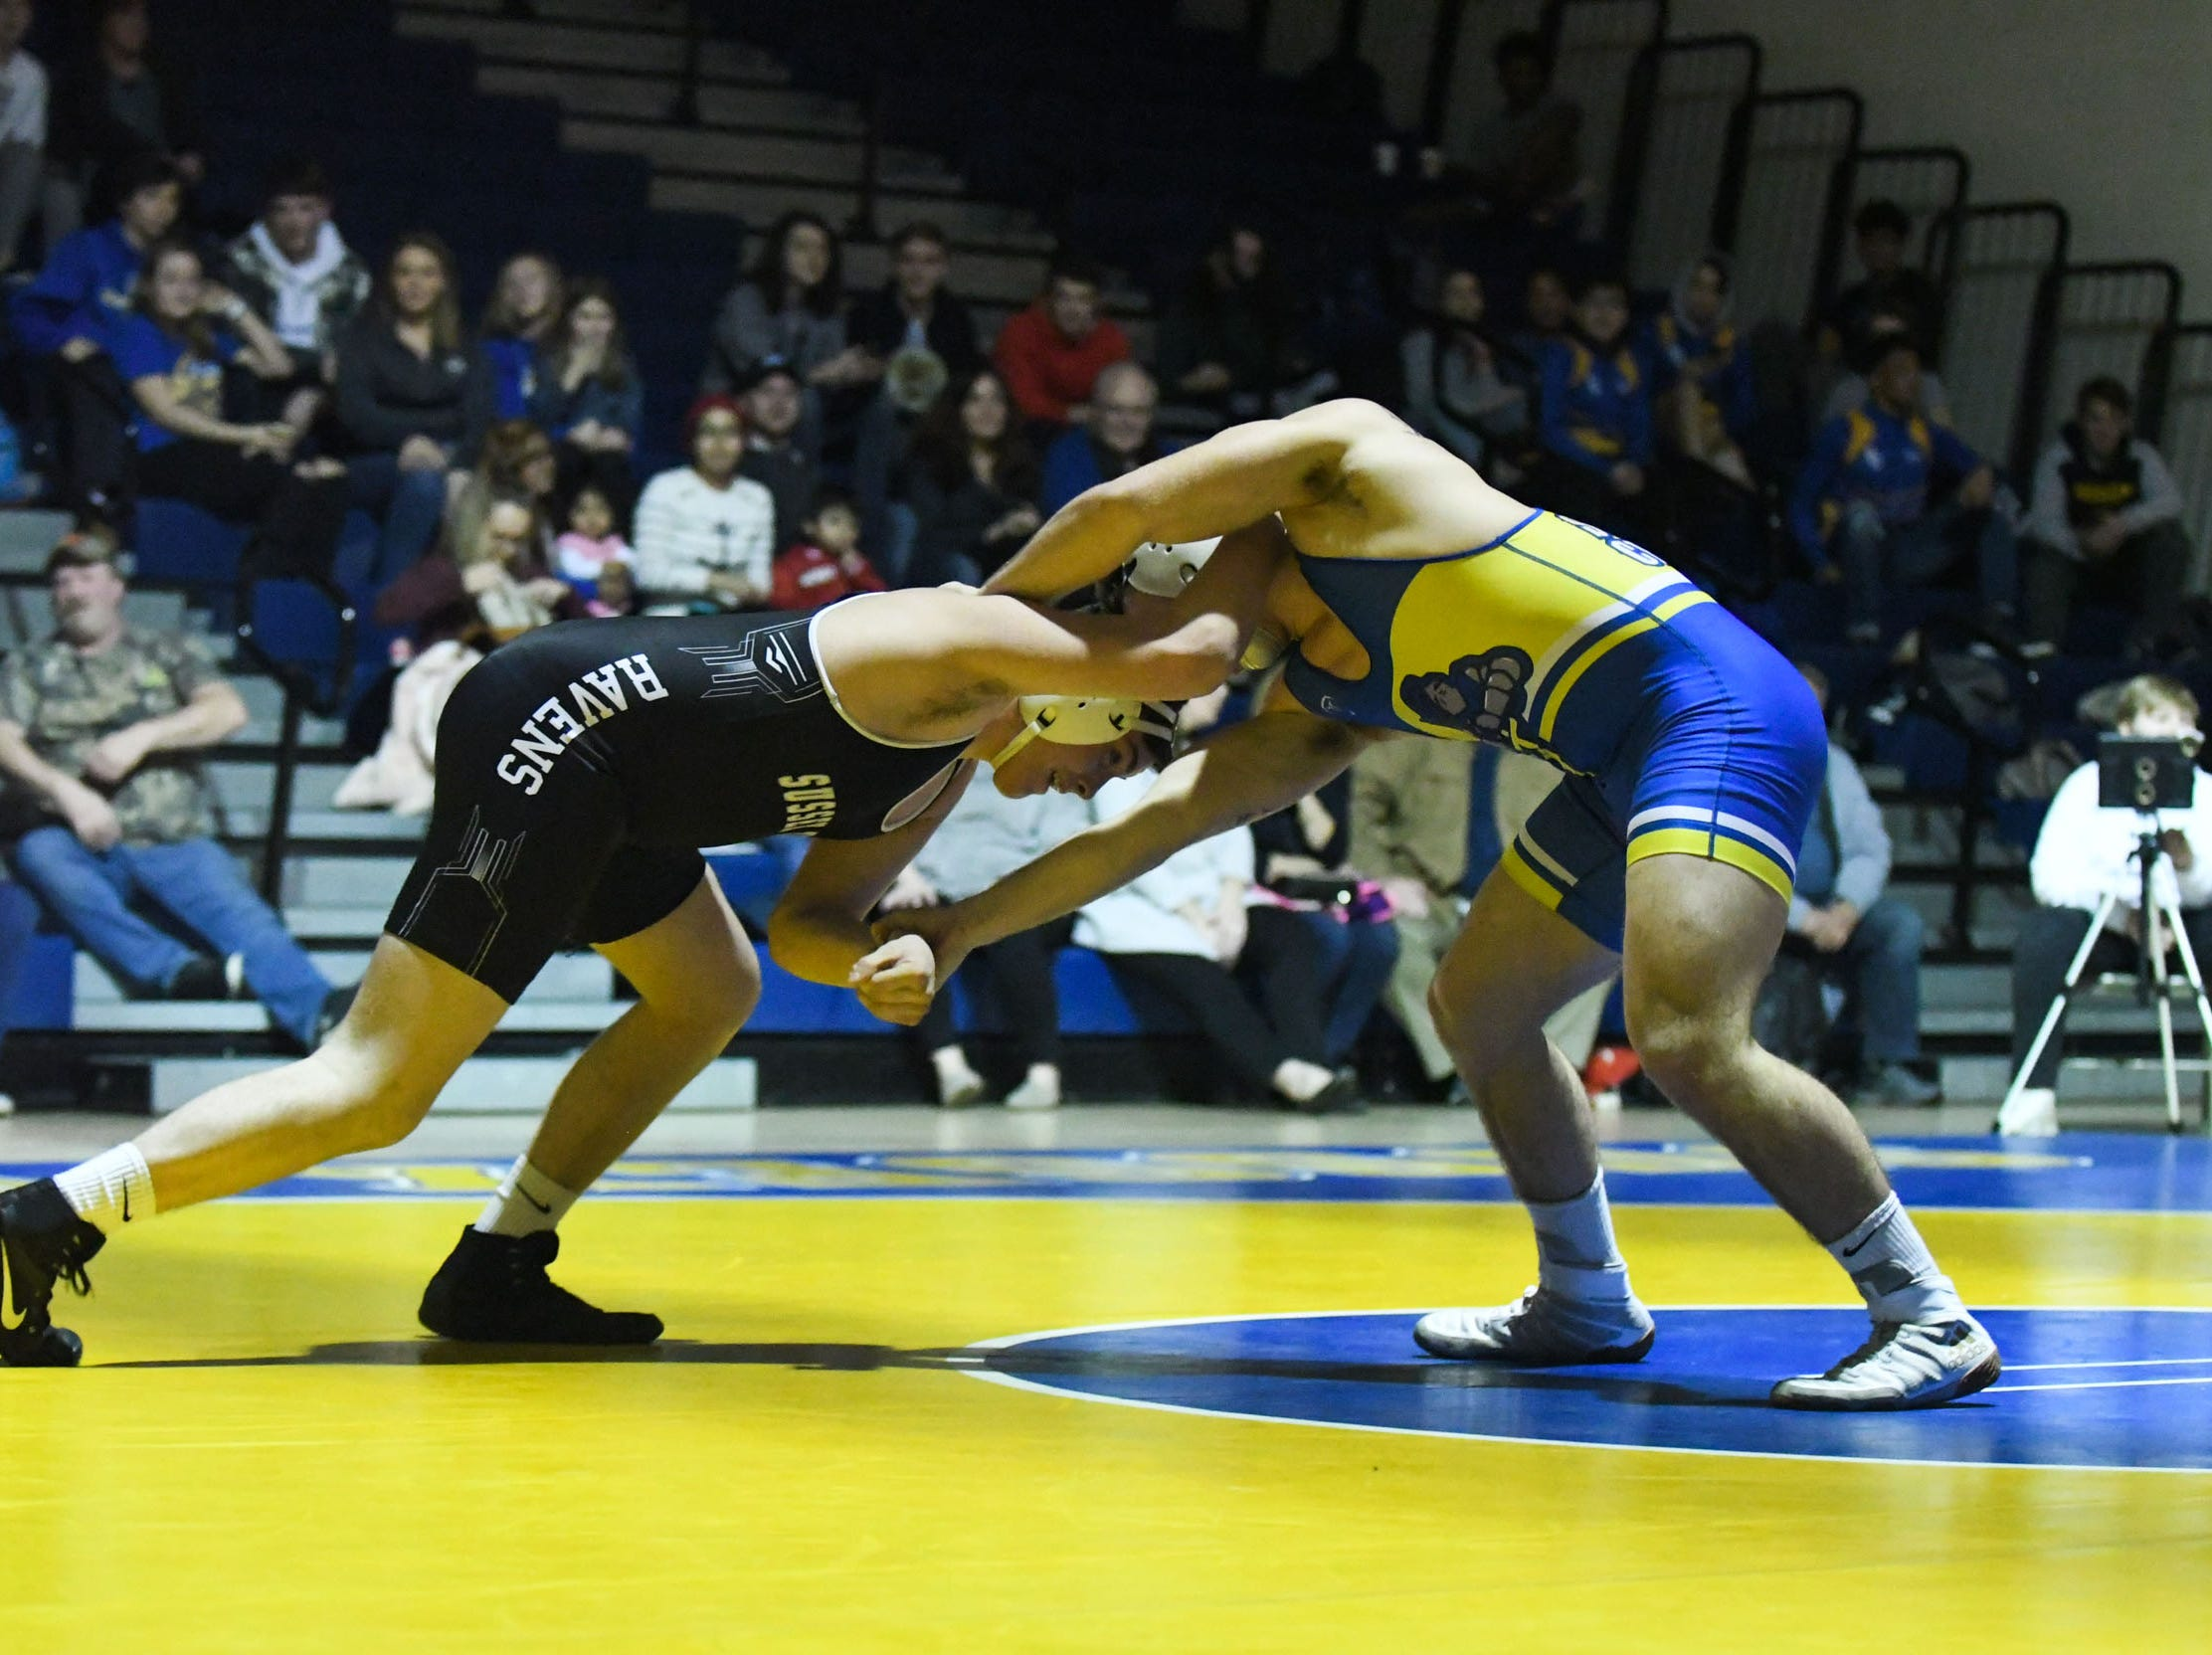 Sussex Central's Michael Wright battled Sussex Tech's Seth Layfield during the match up at 195lbs on Wednesday, Feb. 6, 2019.